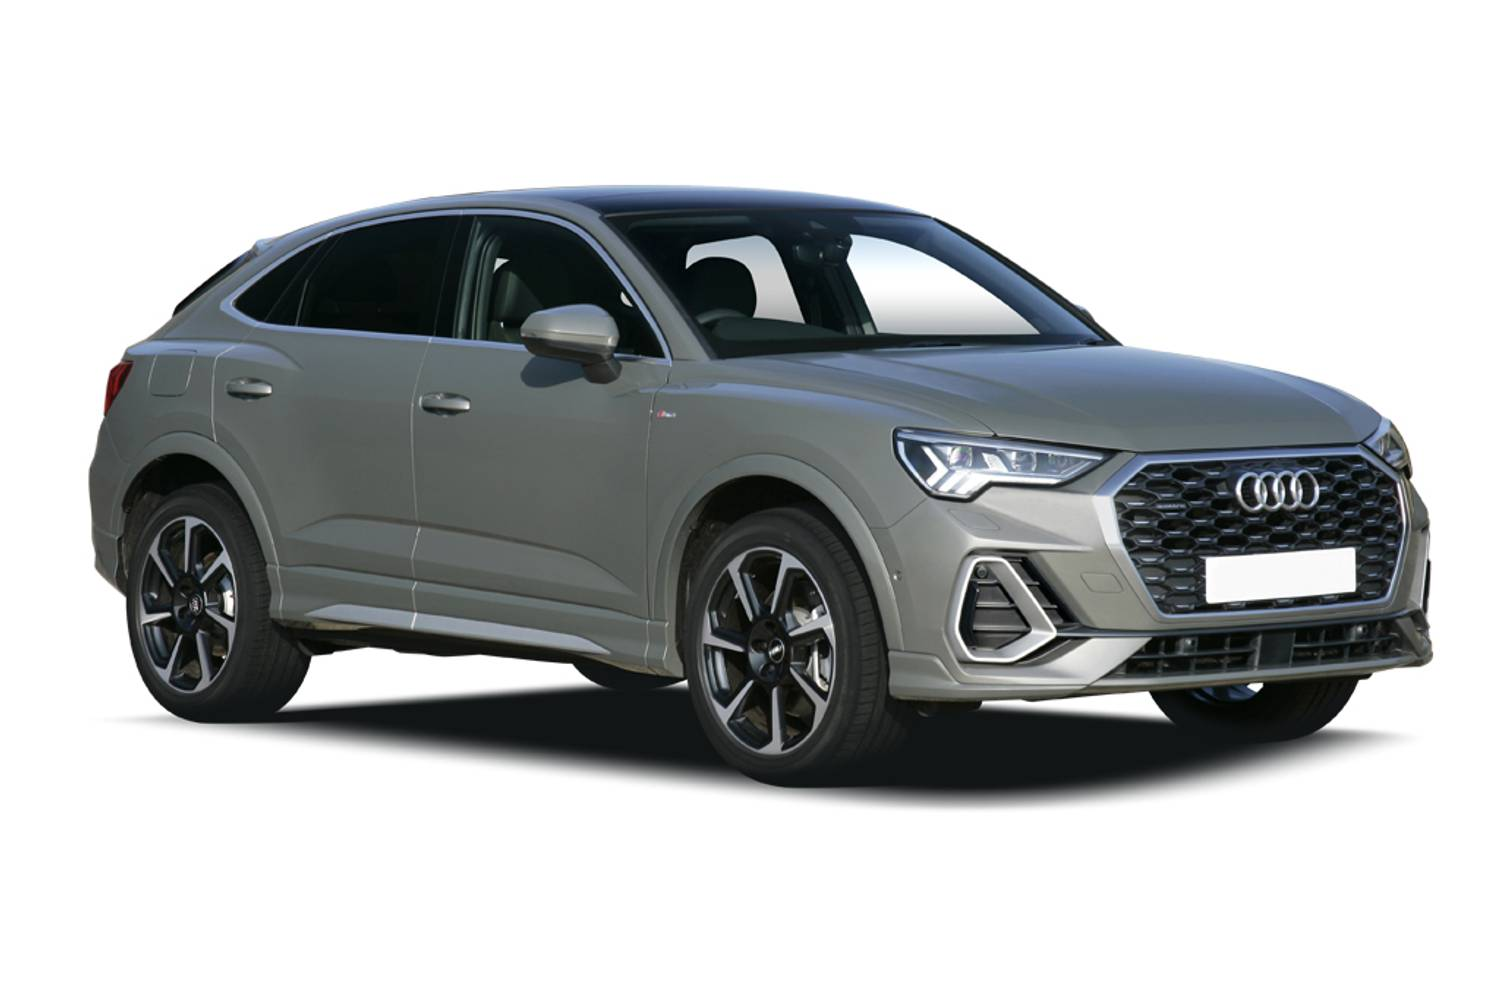 New Audi Q3 Sportback 45 Tfsi Quattro S Line 5 Door S Tronic C S Pack 2019 For Sale